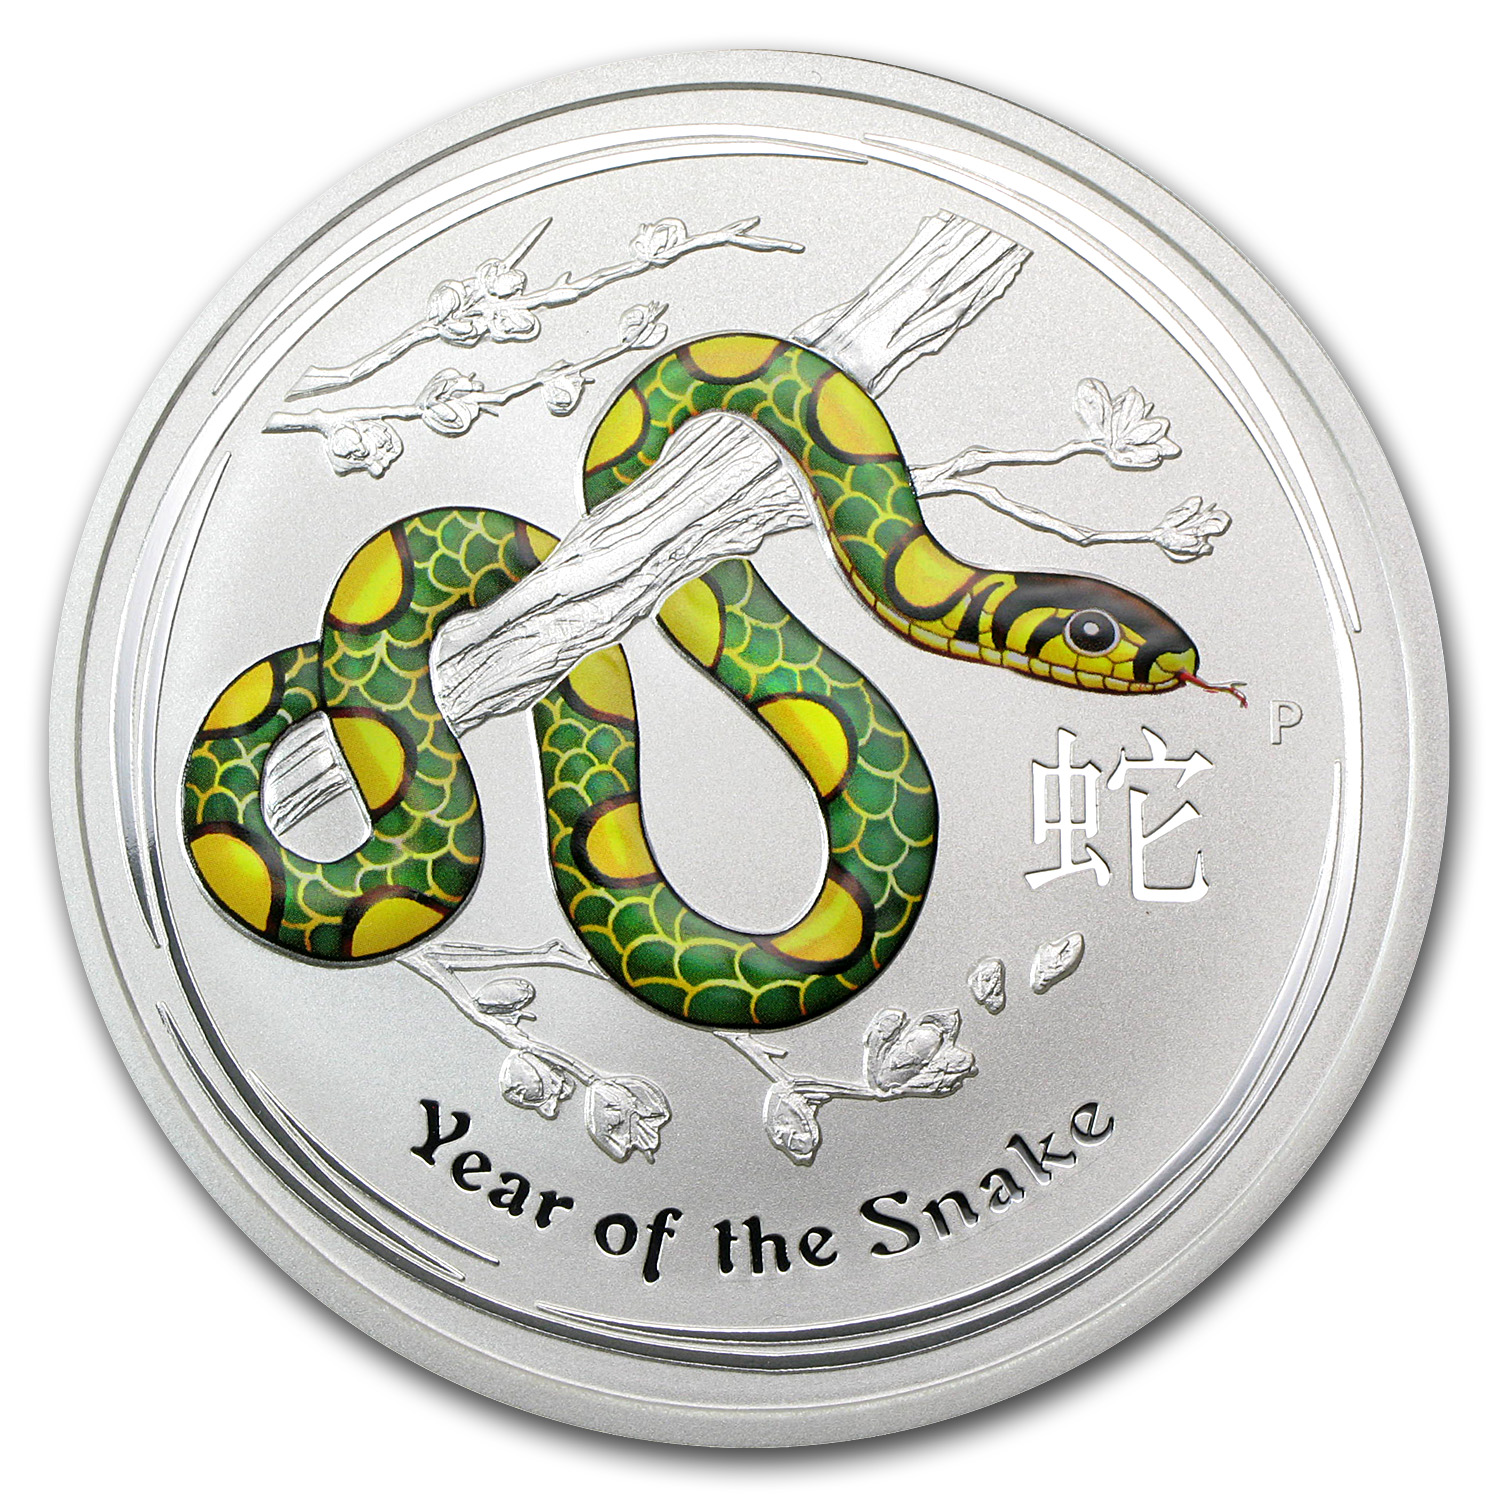 2013 Australia 5 oz Silver Year of the Snake BU (Colorized)